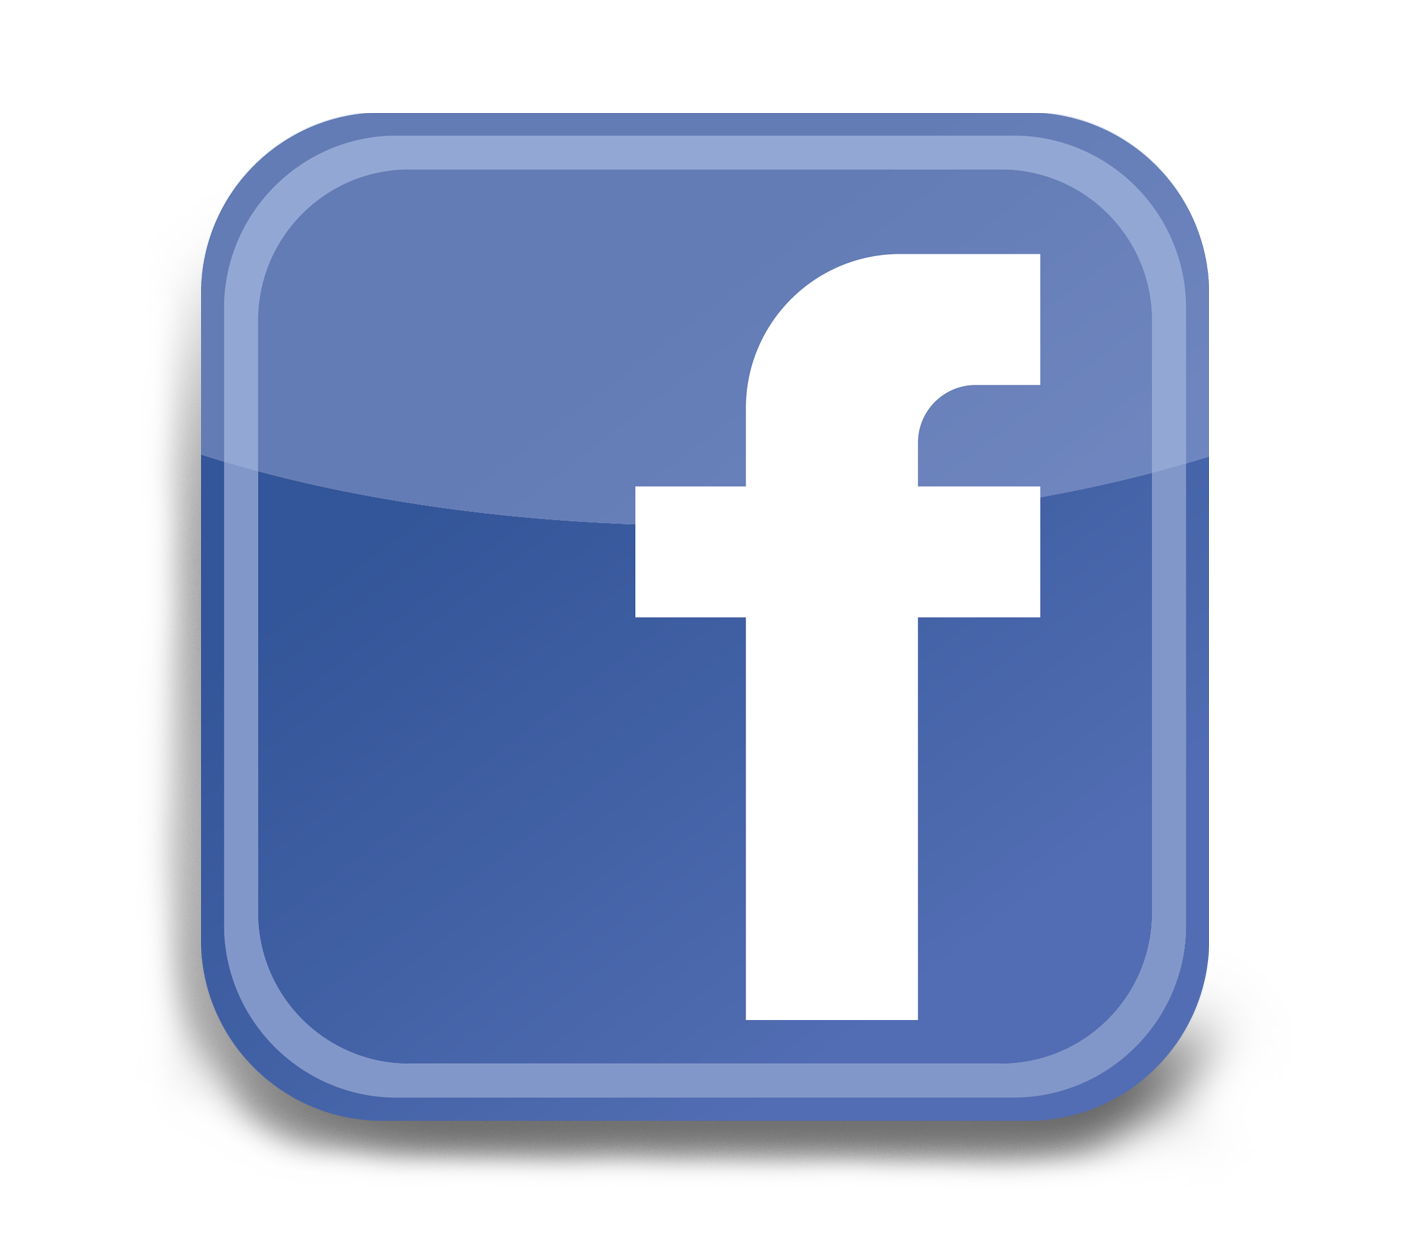 Facebook Logo Png - Free Icons and PNG Backgrounds